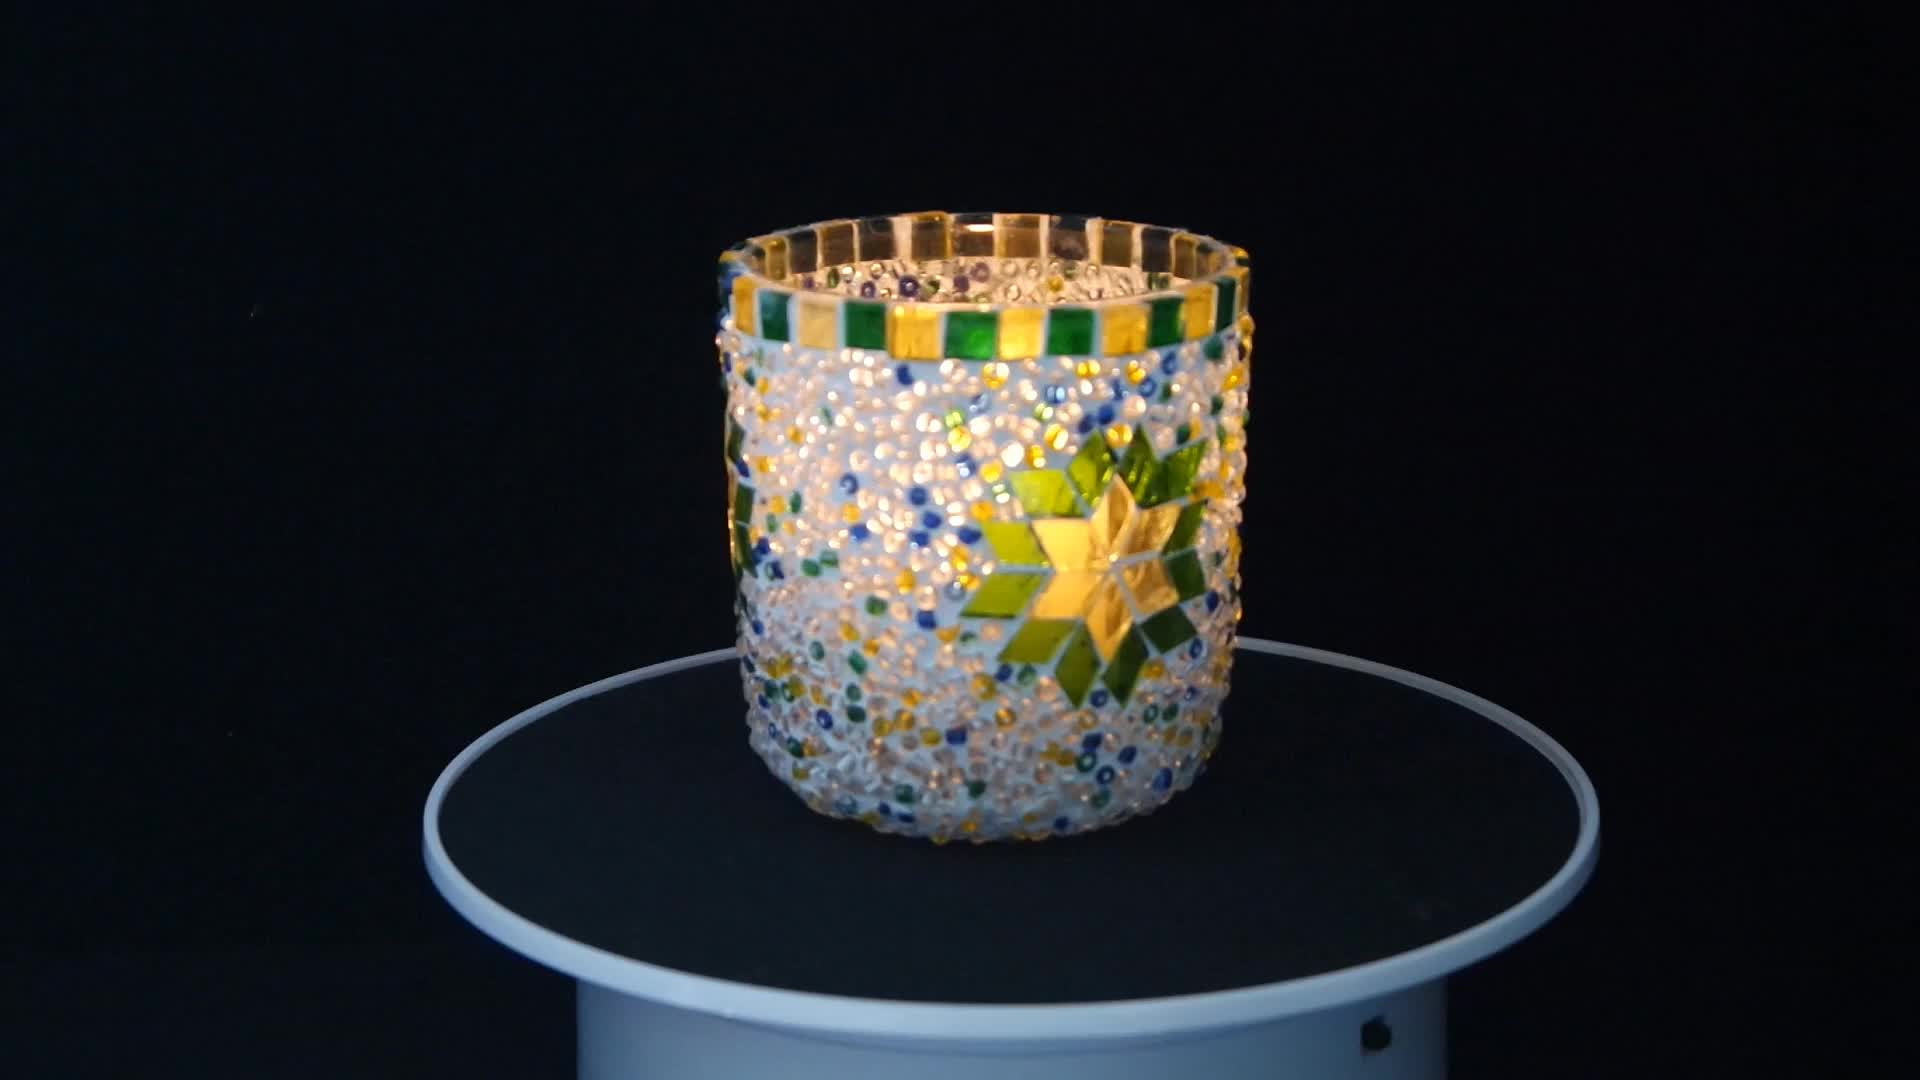 Mosaic glass candle container